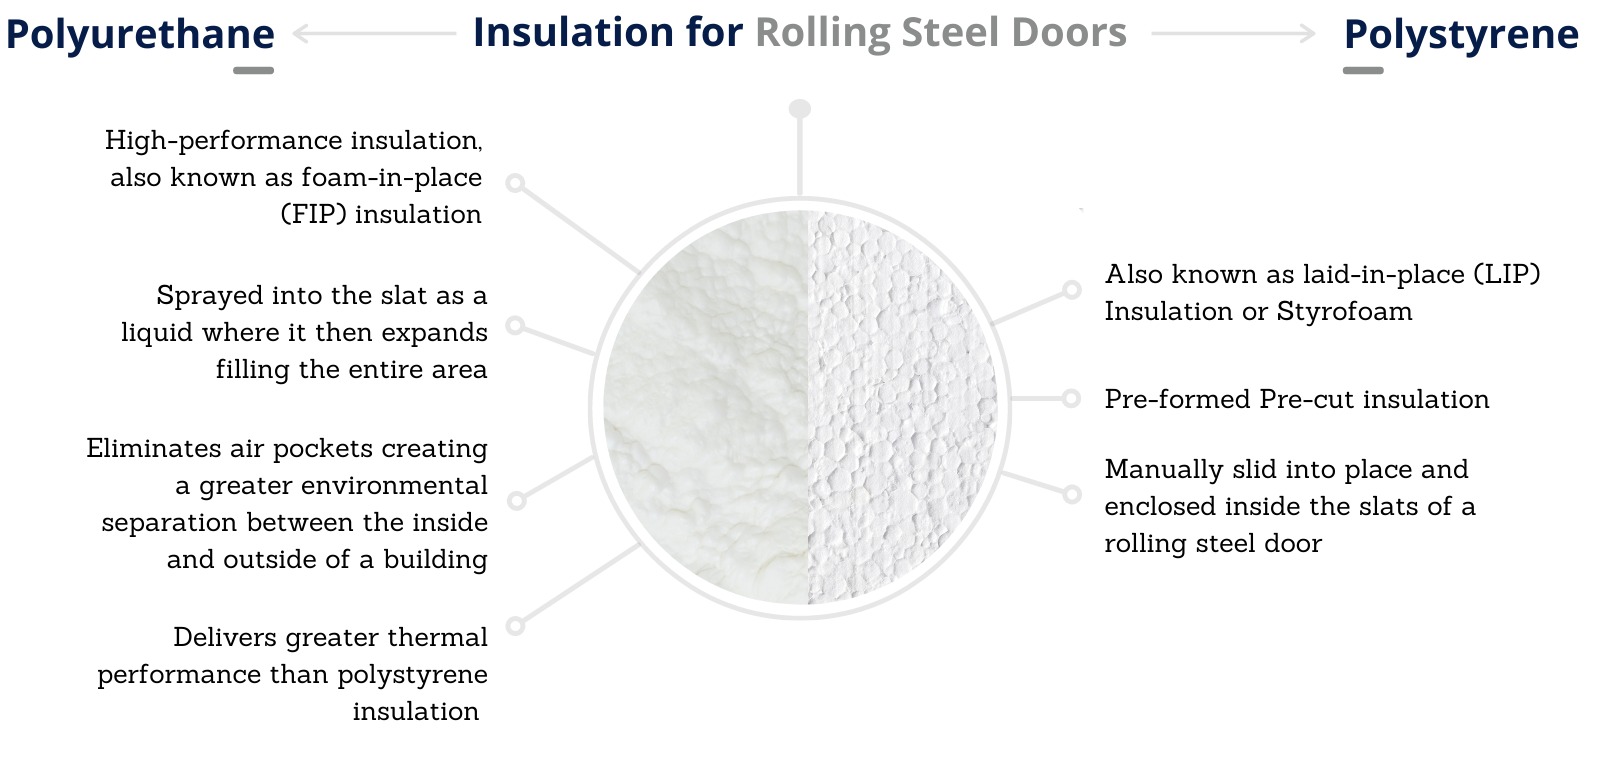 Comparison of Insulation for Rolling Steel Doors